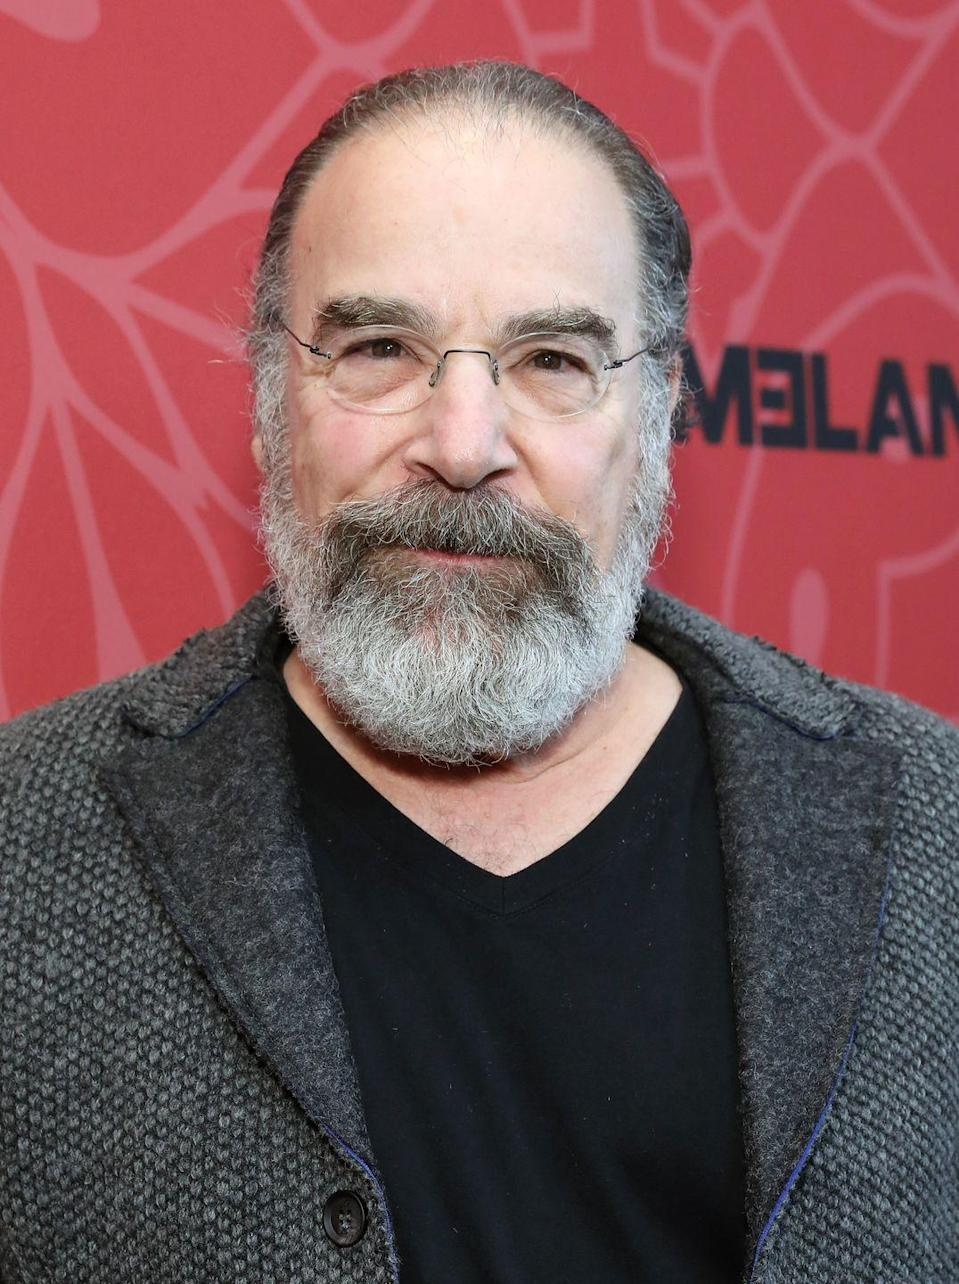 "<p>Mandy Patinkin starred in the CBS series, but abruptly left the show in 2007 after the second season, which was a shock to viewers. For Patinkin, it was the right decision. He told <a href=""https://nymag.com/arts/tv/fall-2012/mandy-patinkin-2012-9/"" rel=""nofollow noopener"" target=""_blank"" data-ylk=""slk:New York Magazine"" class=""link rapid-noclick-resp""><em>New York Magazine</em></a>, ""The biggest public mistake I ever made was that I chose to do <em>Criminal Minds</em> in the first place. I thought it was something very different. I never thought they were going to kill and rape all these women every night, every day, week after week, year after year. It was very destructive to my soul and my personality. After that, I didn't think I would get to work in television again.""</p>"